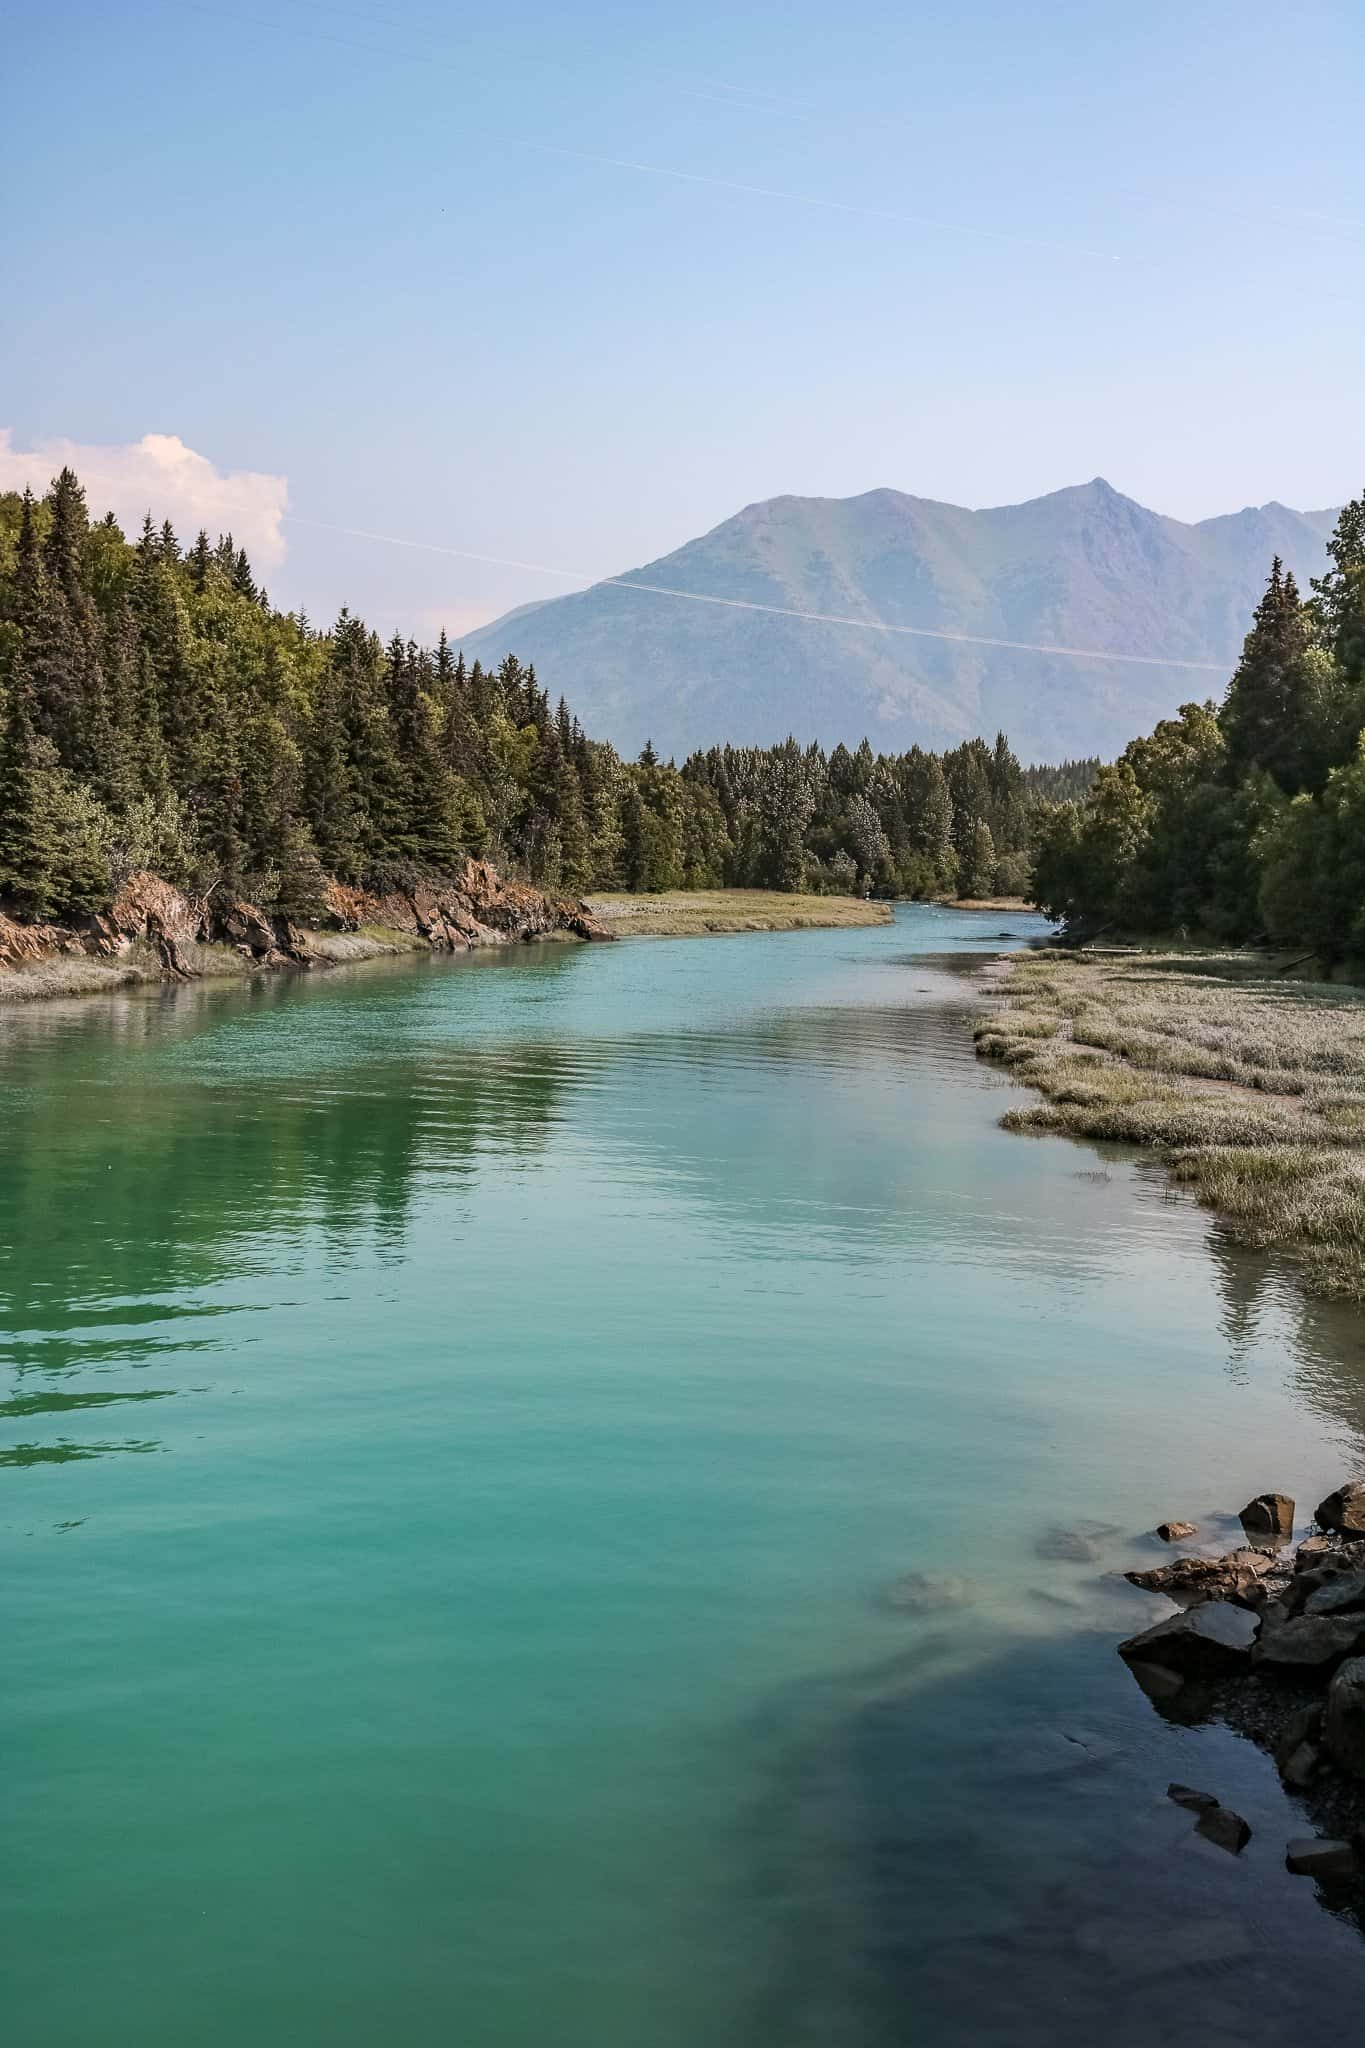 River in the Summer at Kenai Peninsula - The Next Trip